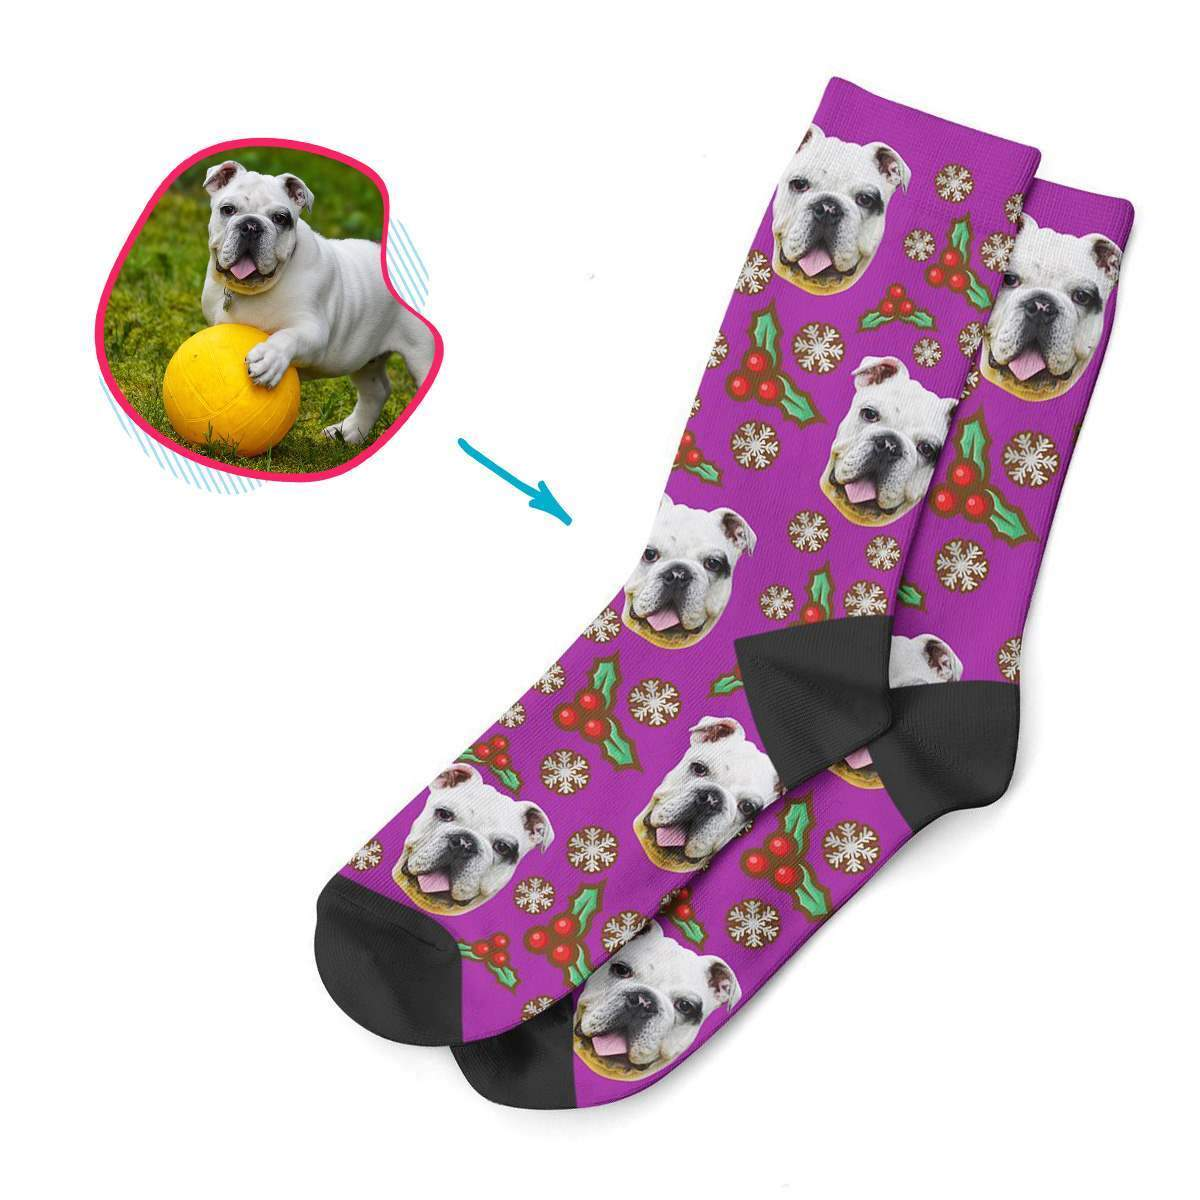 purple Mistletoe socks personalized with photo of face printed on them